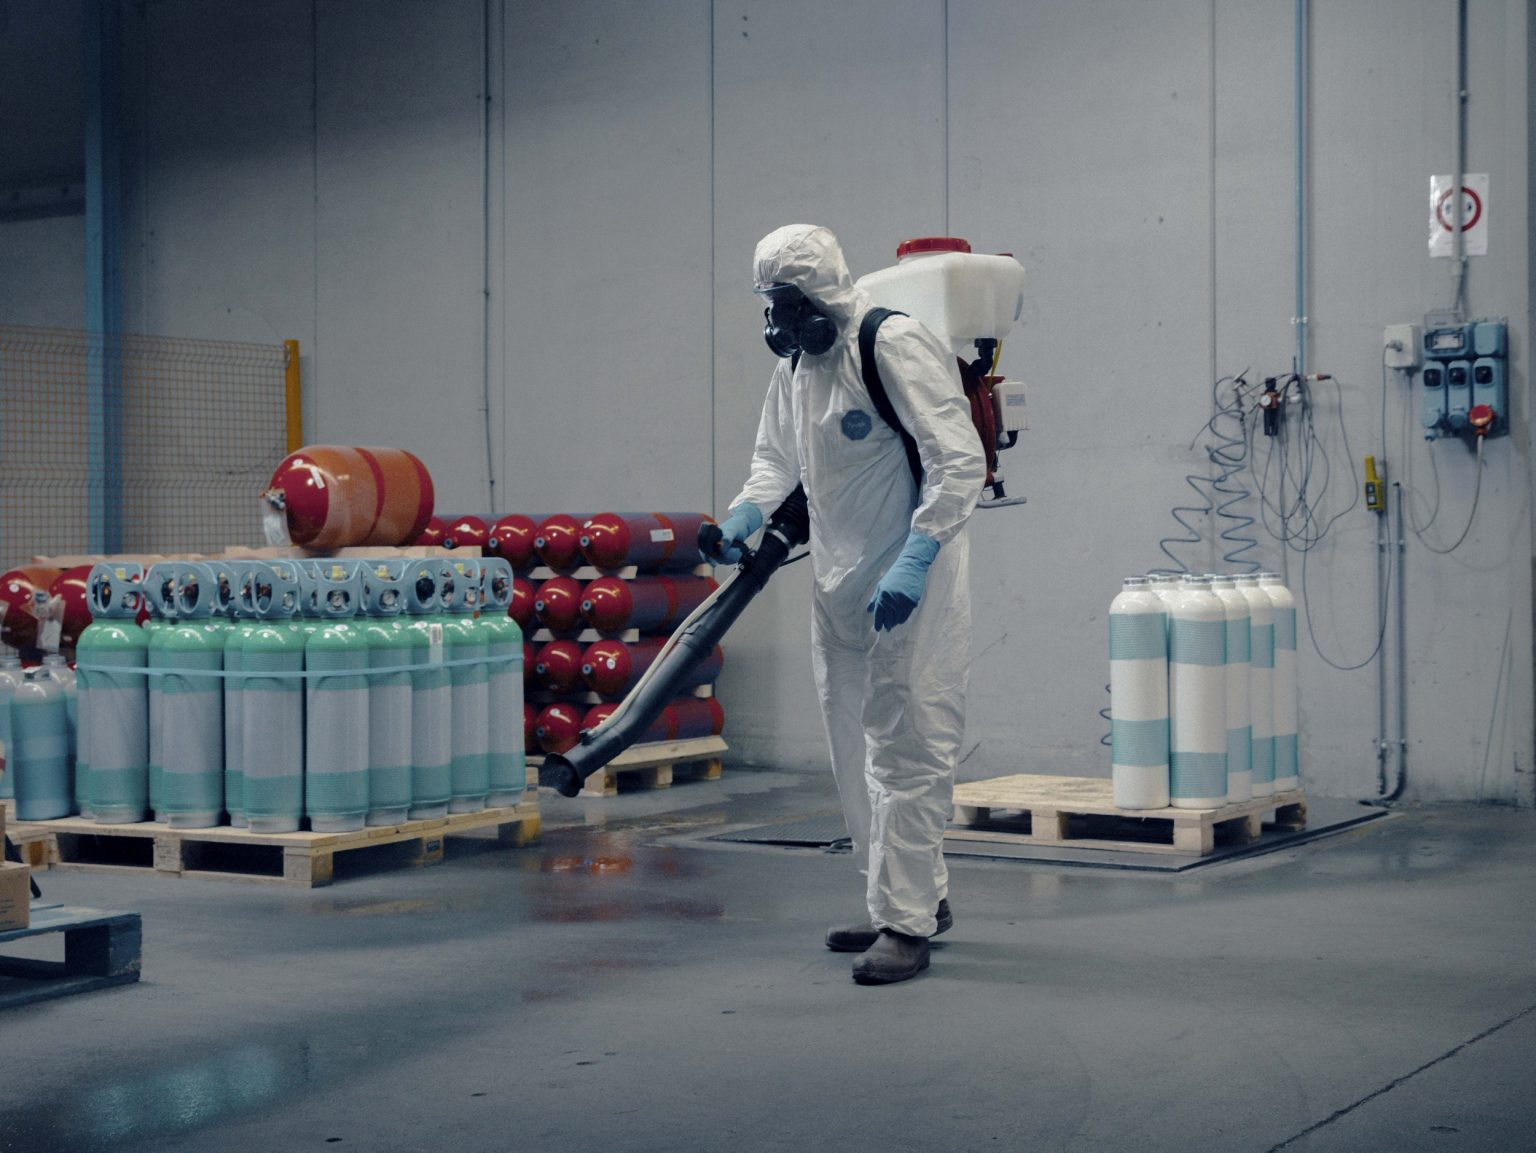 Faber is a company specialized in producing cylinders for different types of content in medical use.  Its 330 employees work on three shifts, 24 hours a day. All production has been moved to the cylinders for medical gases, especially oxygen, essential for anticoronavirus therapies. In this image: a worker spraying disinfectant in different areas of the factory to avoid spreading of the virus. Cividale del Friuli, Italy, 2020